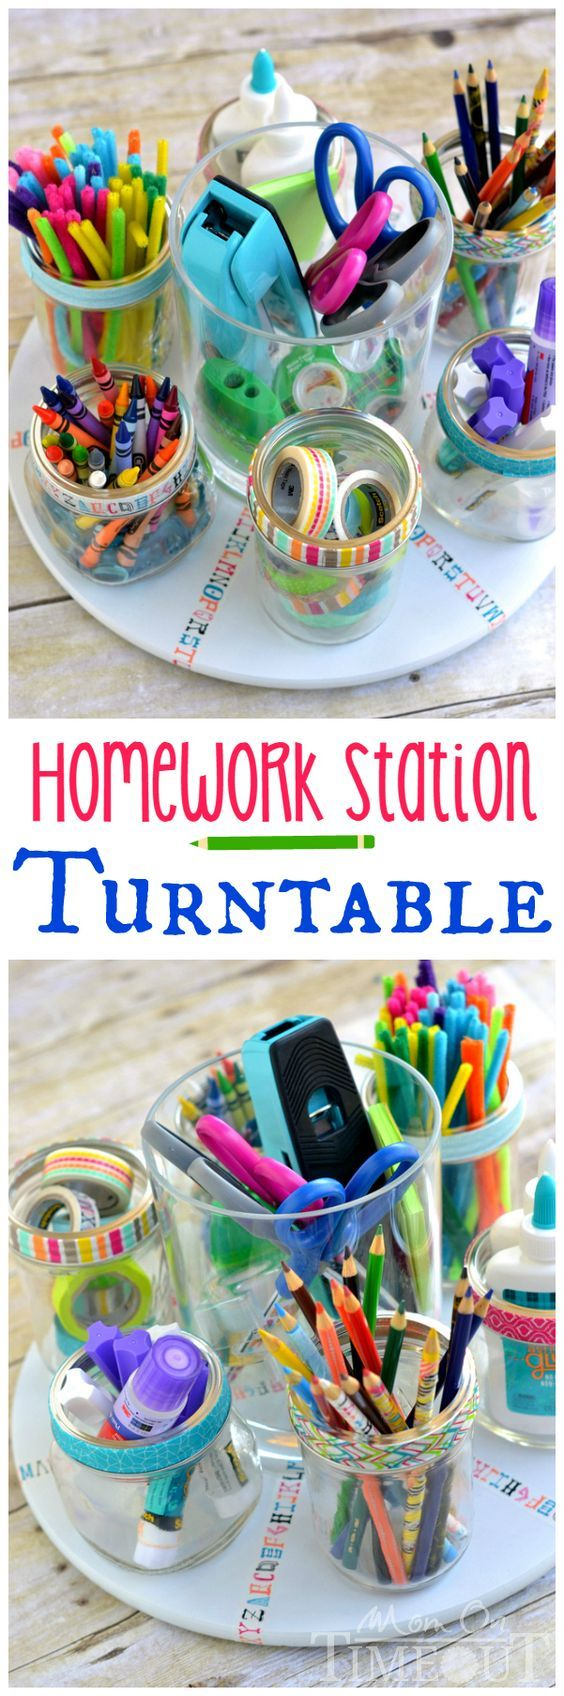 Homework Station Turntable by Mom on Tmeout